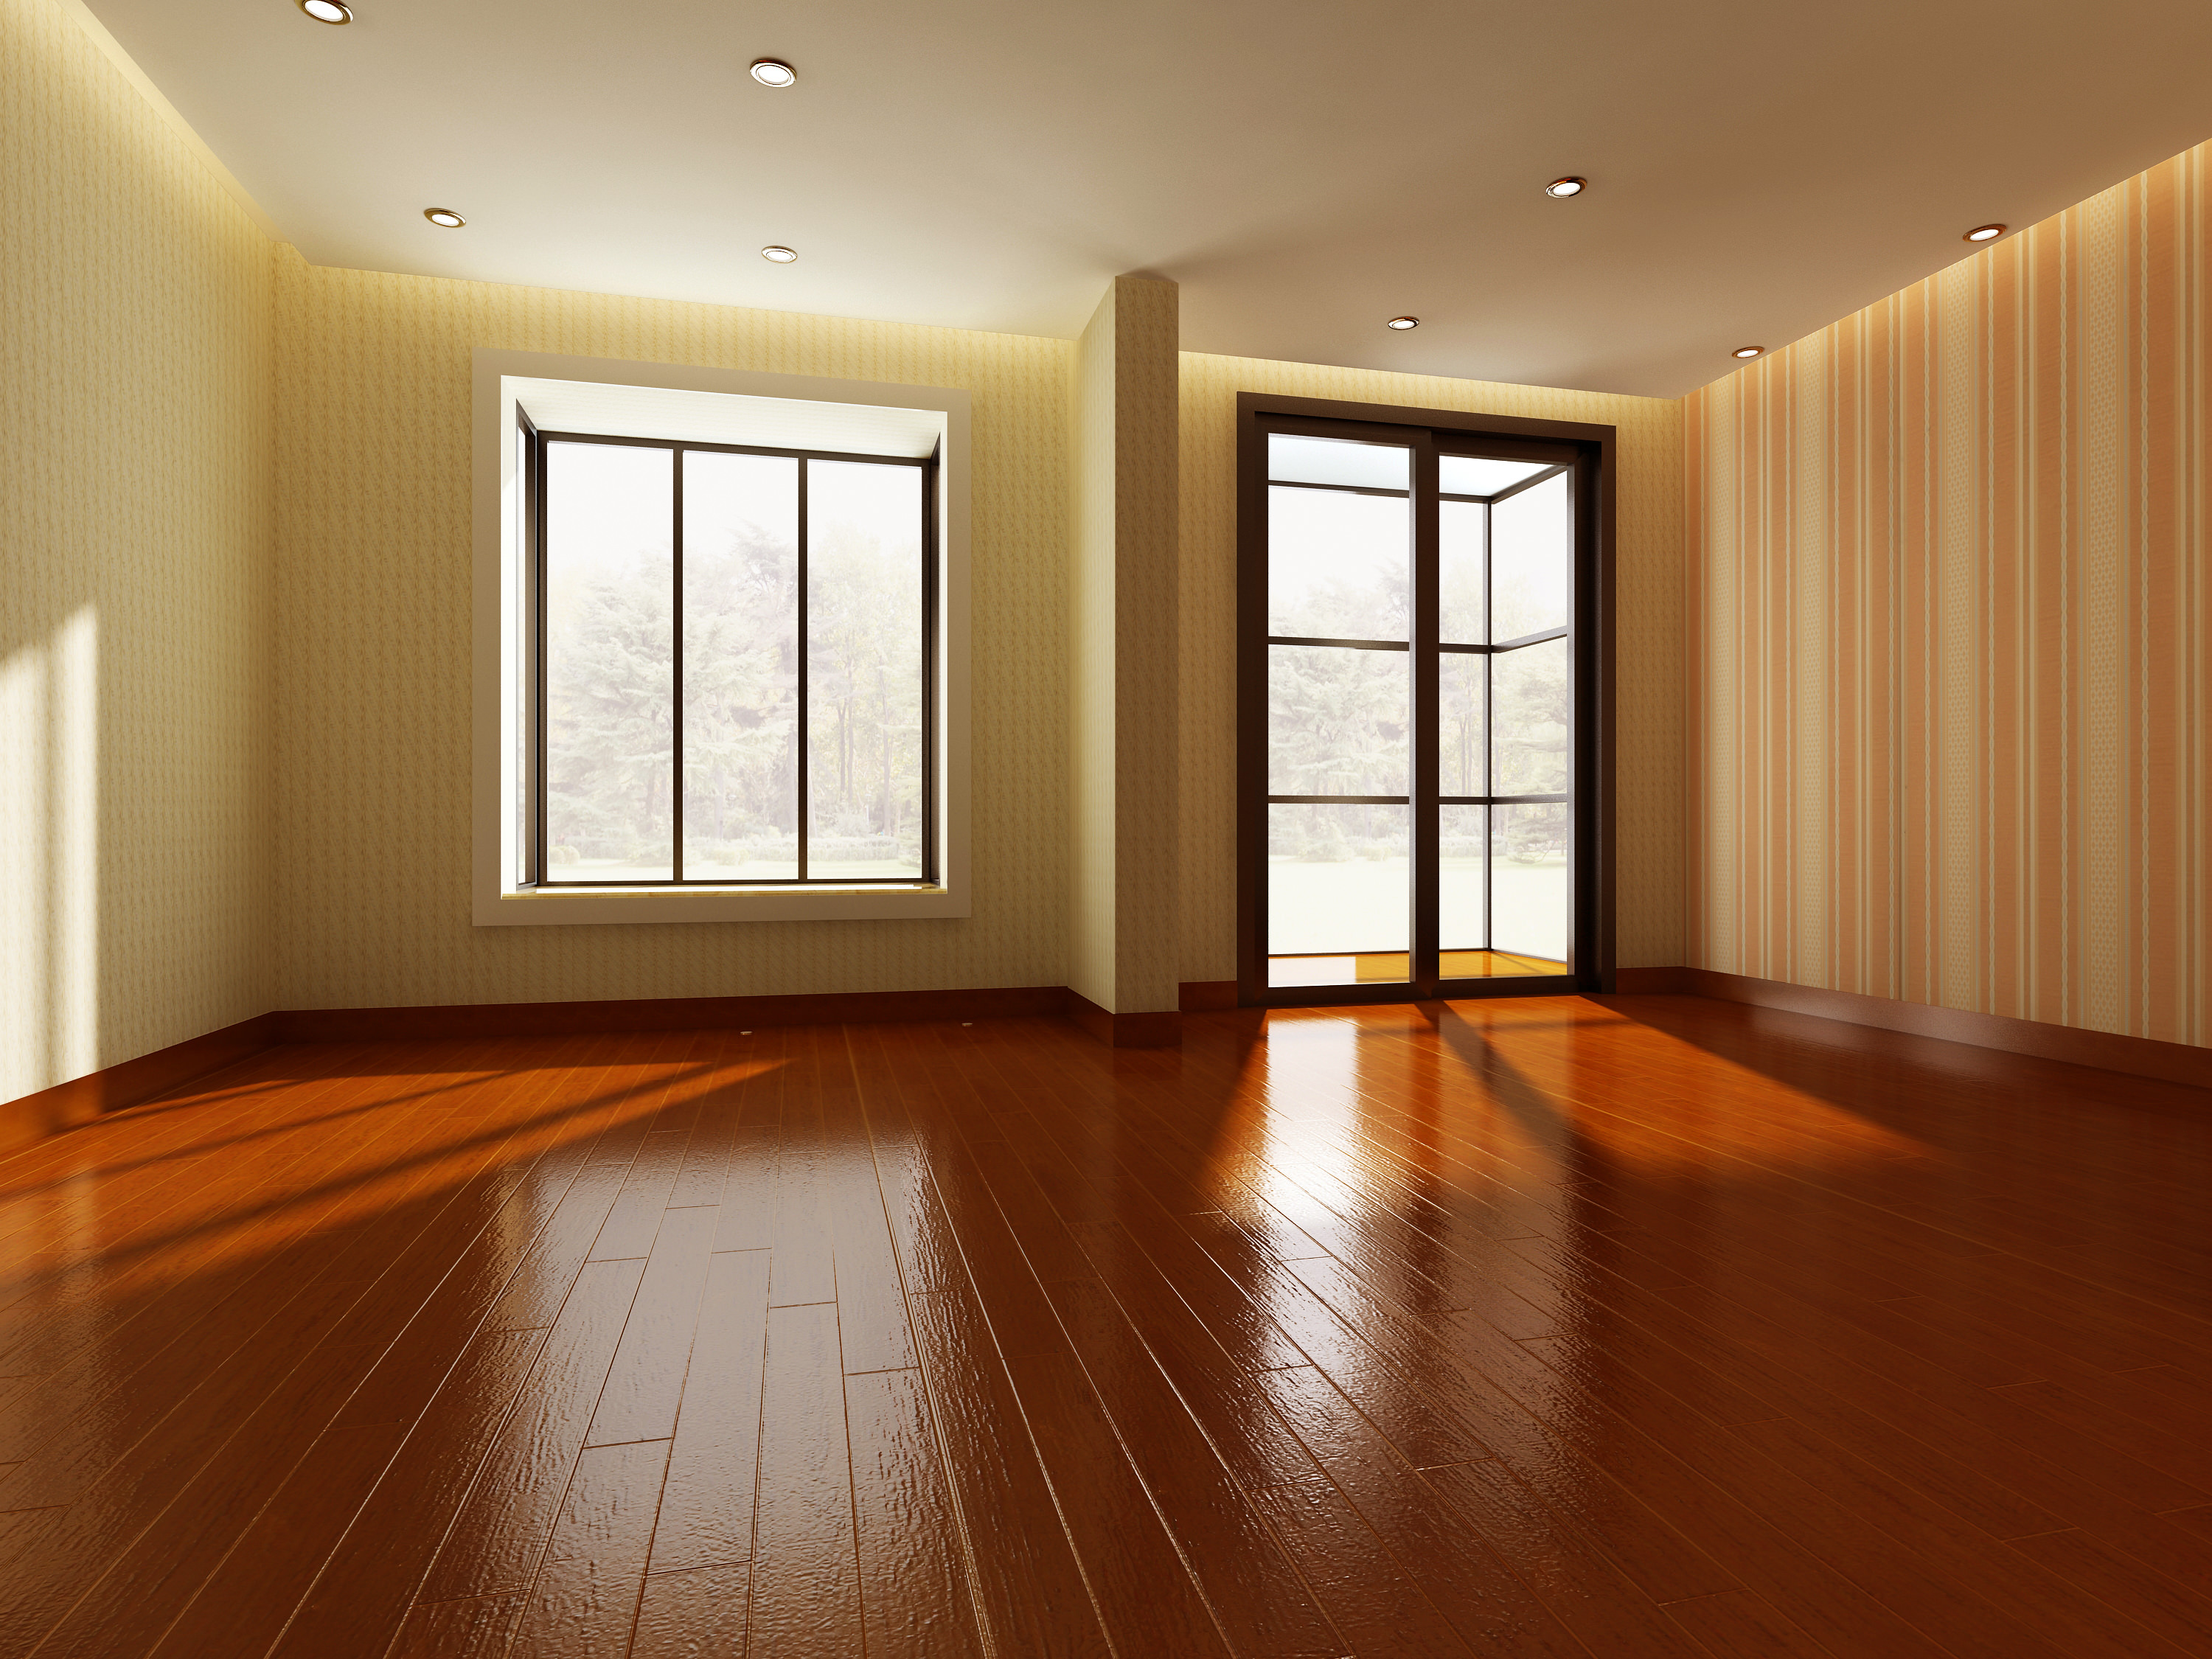 room 3d model empty room f454 3d model luxury architectural empty room